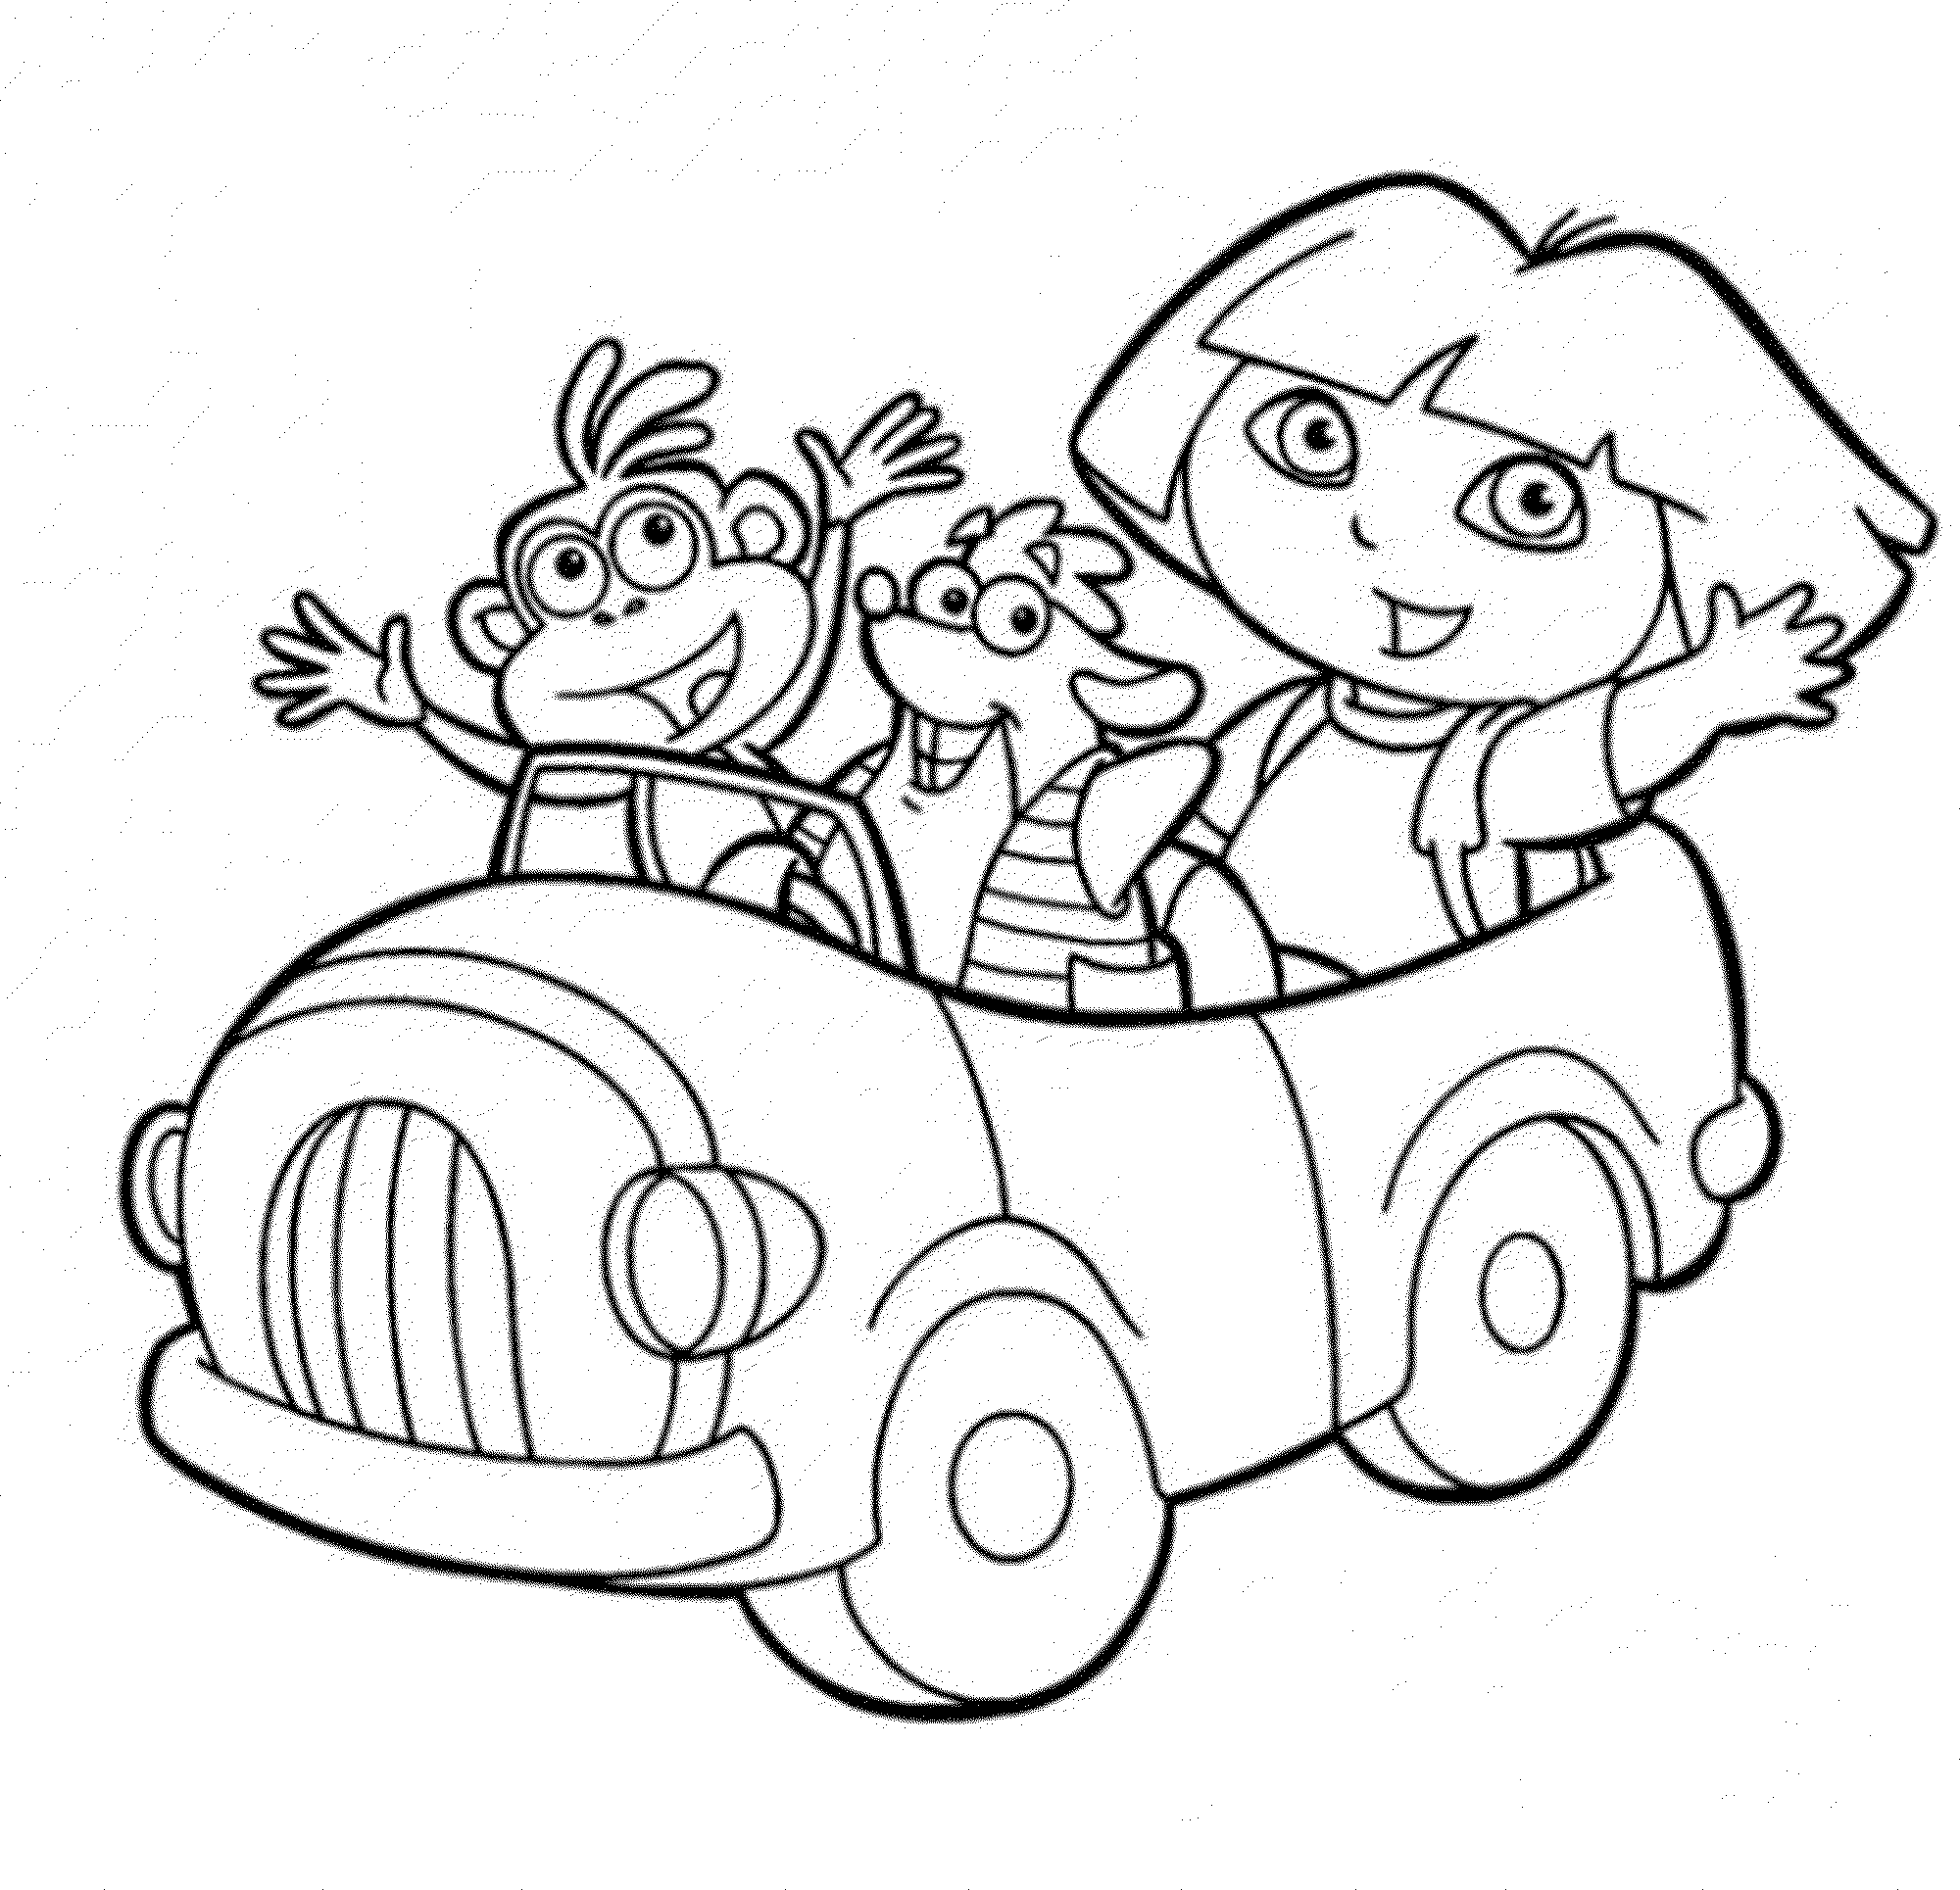 free printable dora coloring pages dora the explorer printable coloring pages hubpages dora coloring printable pages free